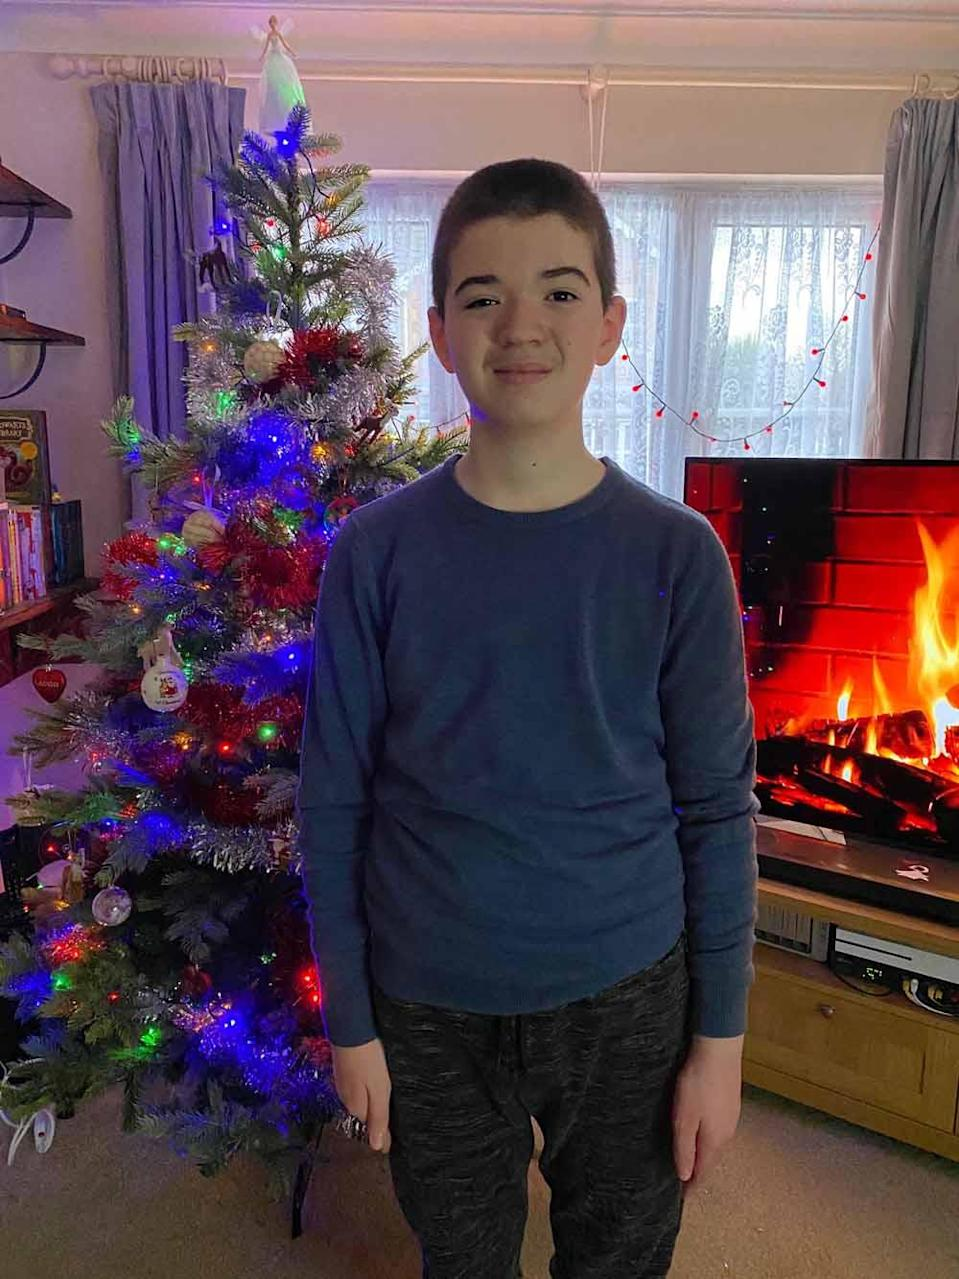 Daniel at home for Christmas in December 2020. PA REAL LIFE COLLECT